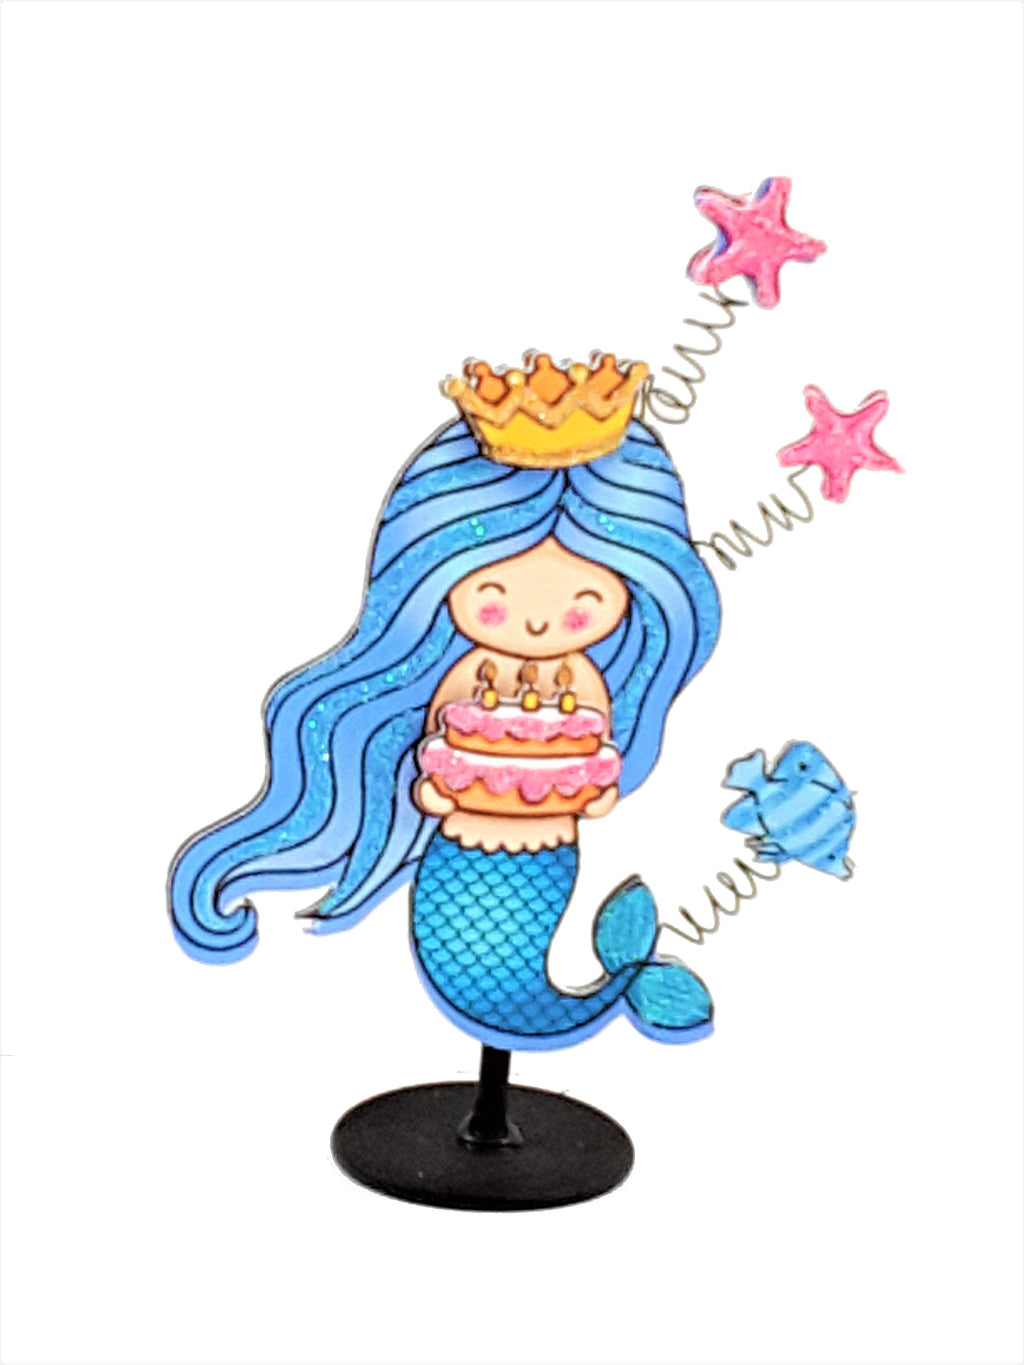 Pretty little mermaid 3D birthday card